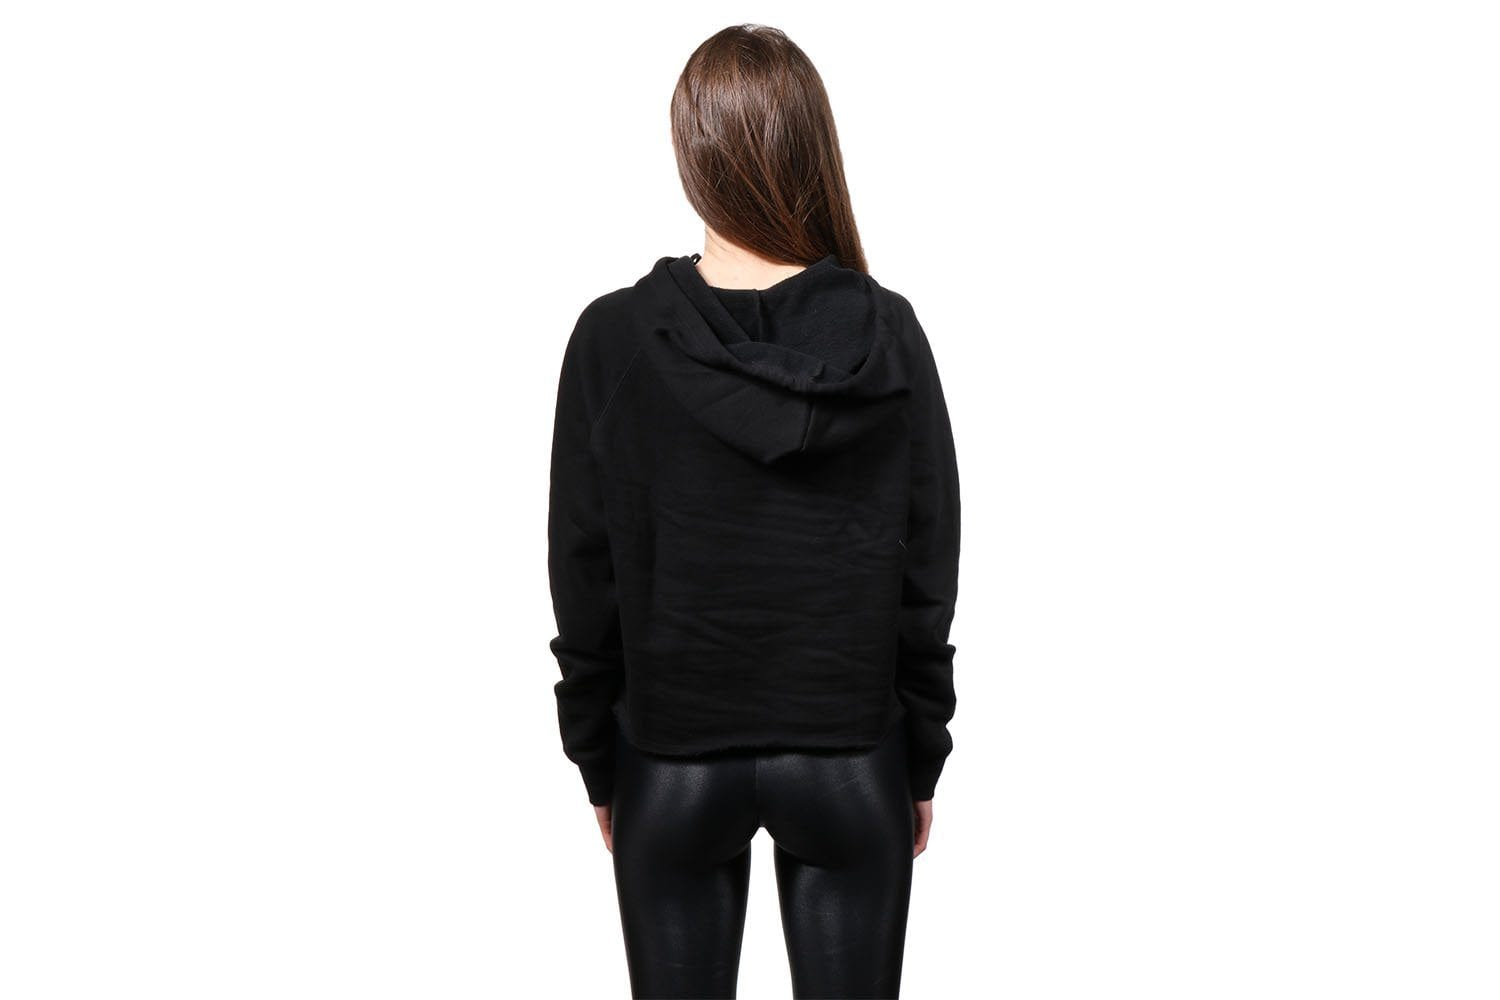 MIDDLE SISTER HOODIE 'GIRLS' WOMENS SOFTGOODS BITNB